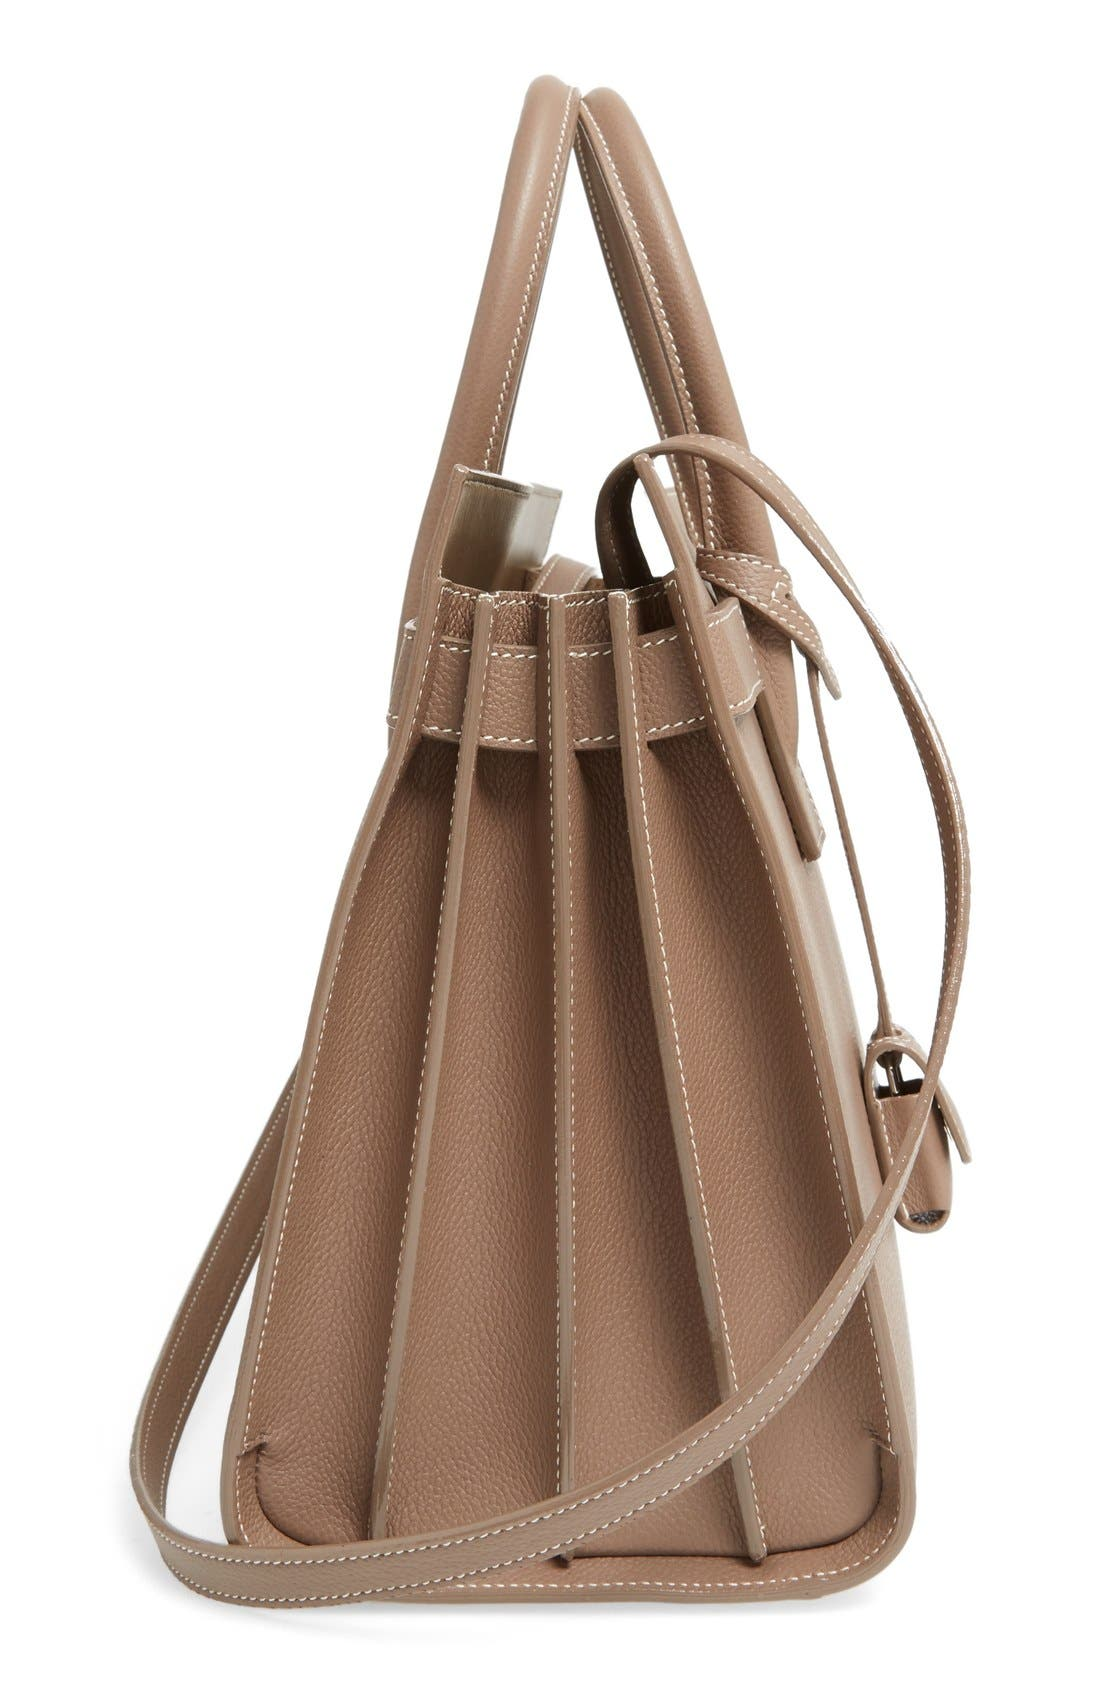 Small Sac de Jour Calfskin Leather Tote,                             Alternate thumbnail 5, color,                             Taupe/White